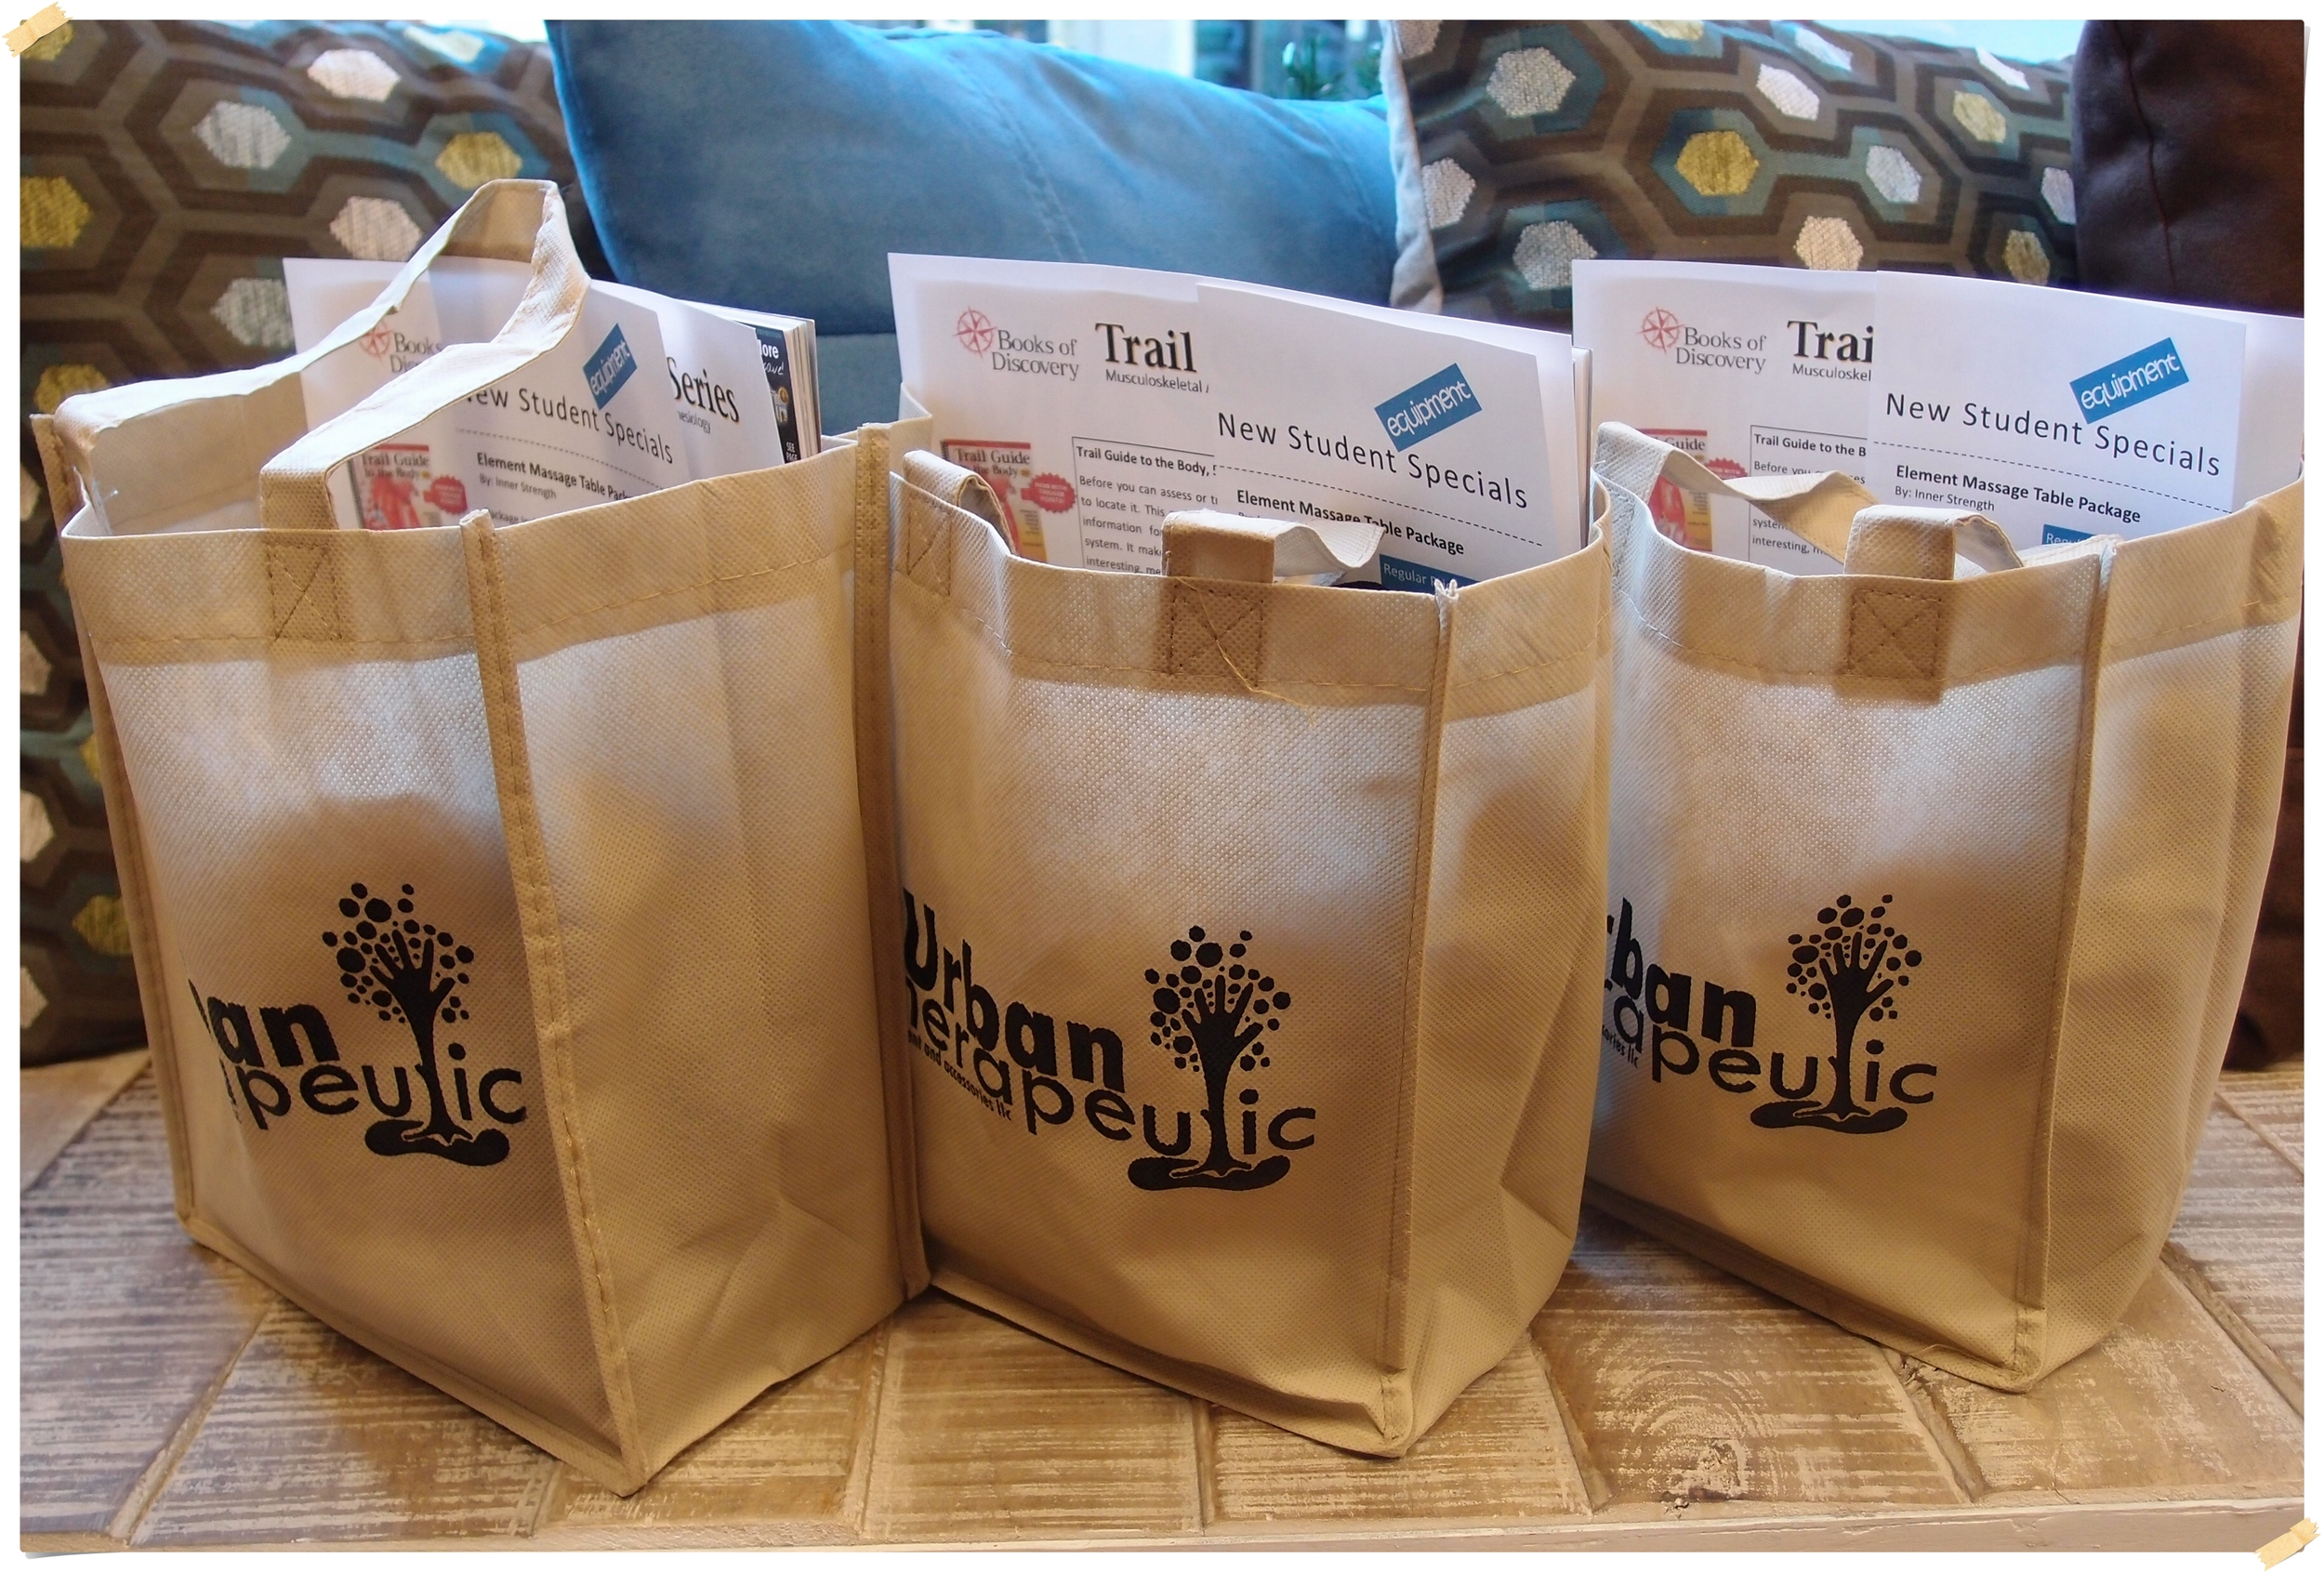 Winter Term Students - we hope you enjoy your New Student Welcome Bags!